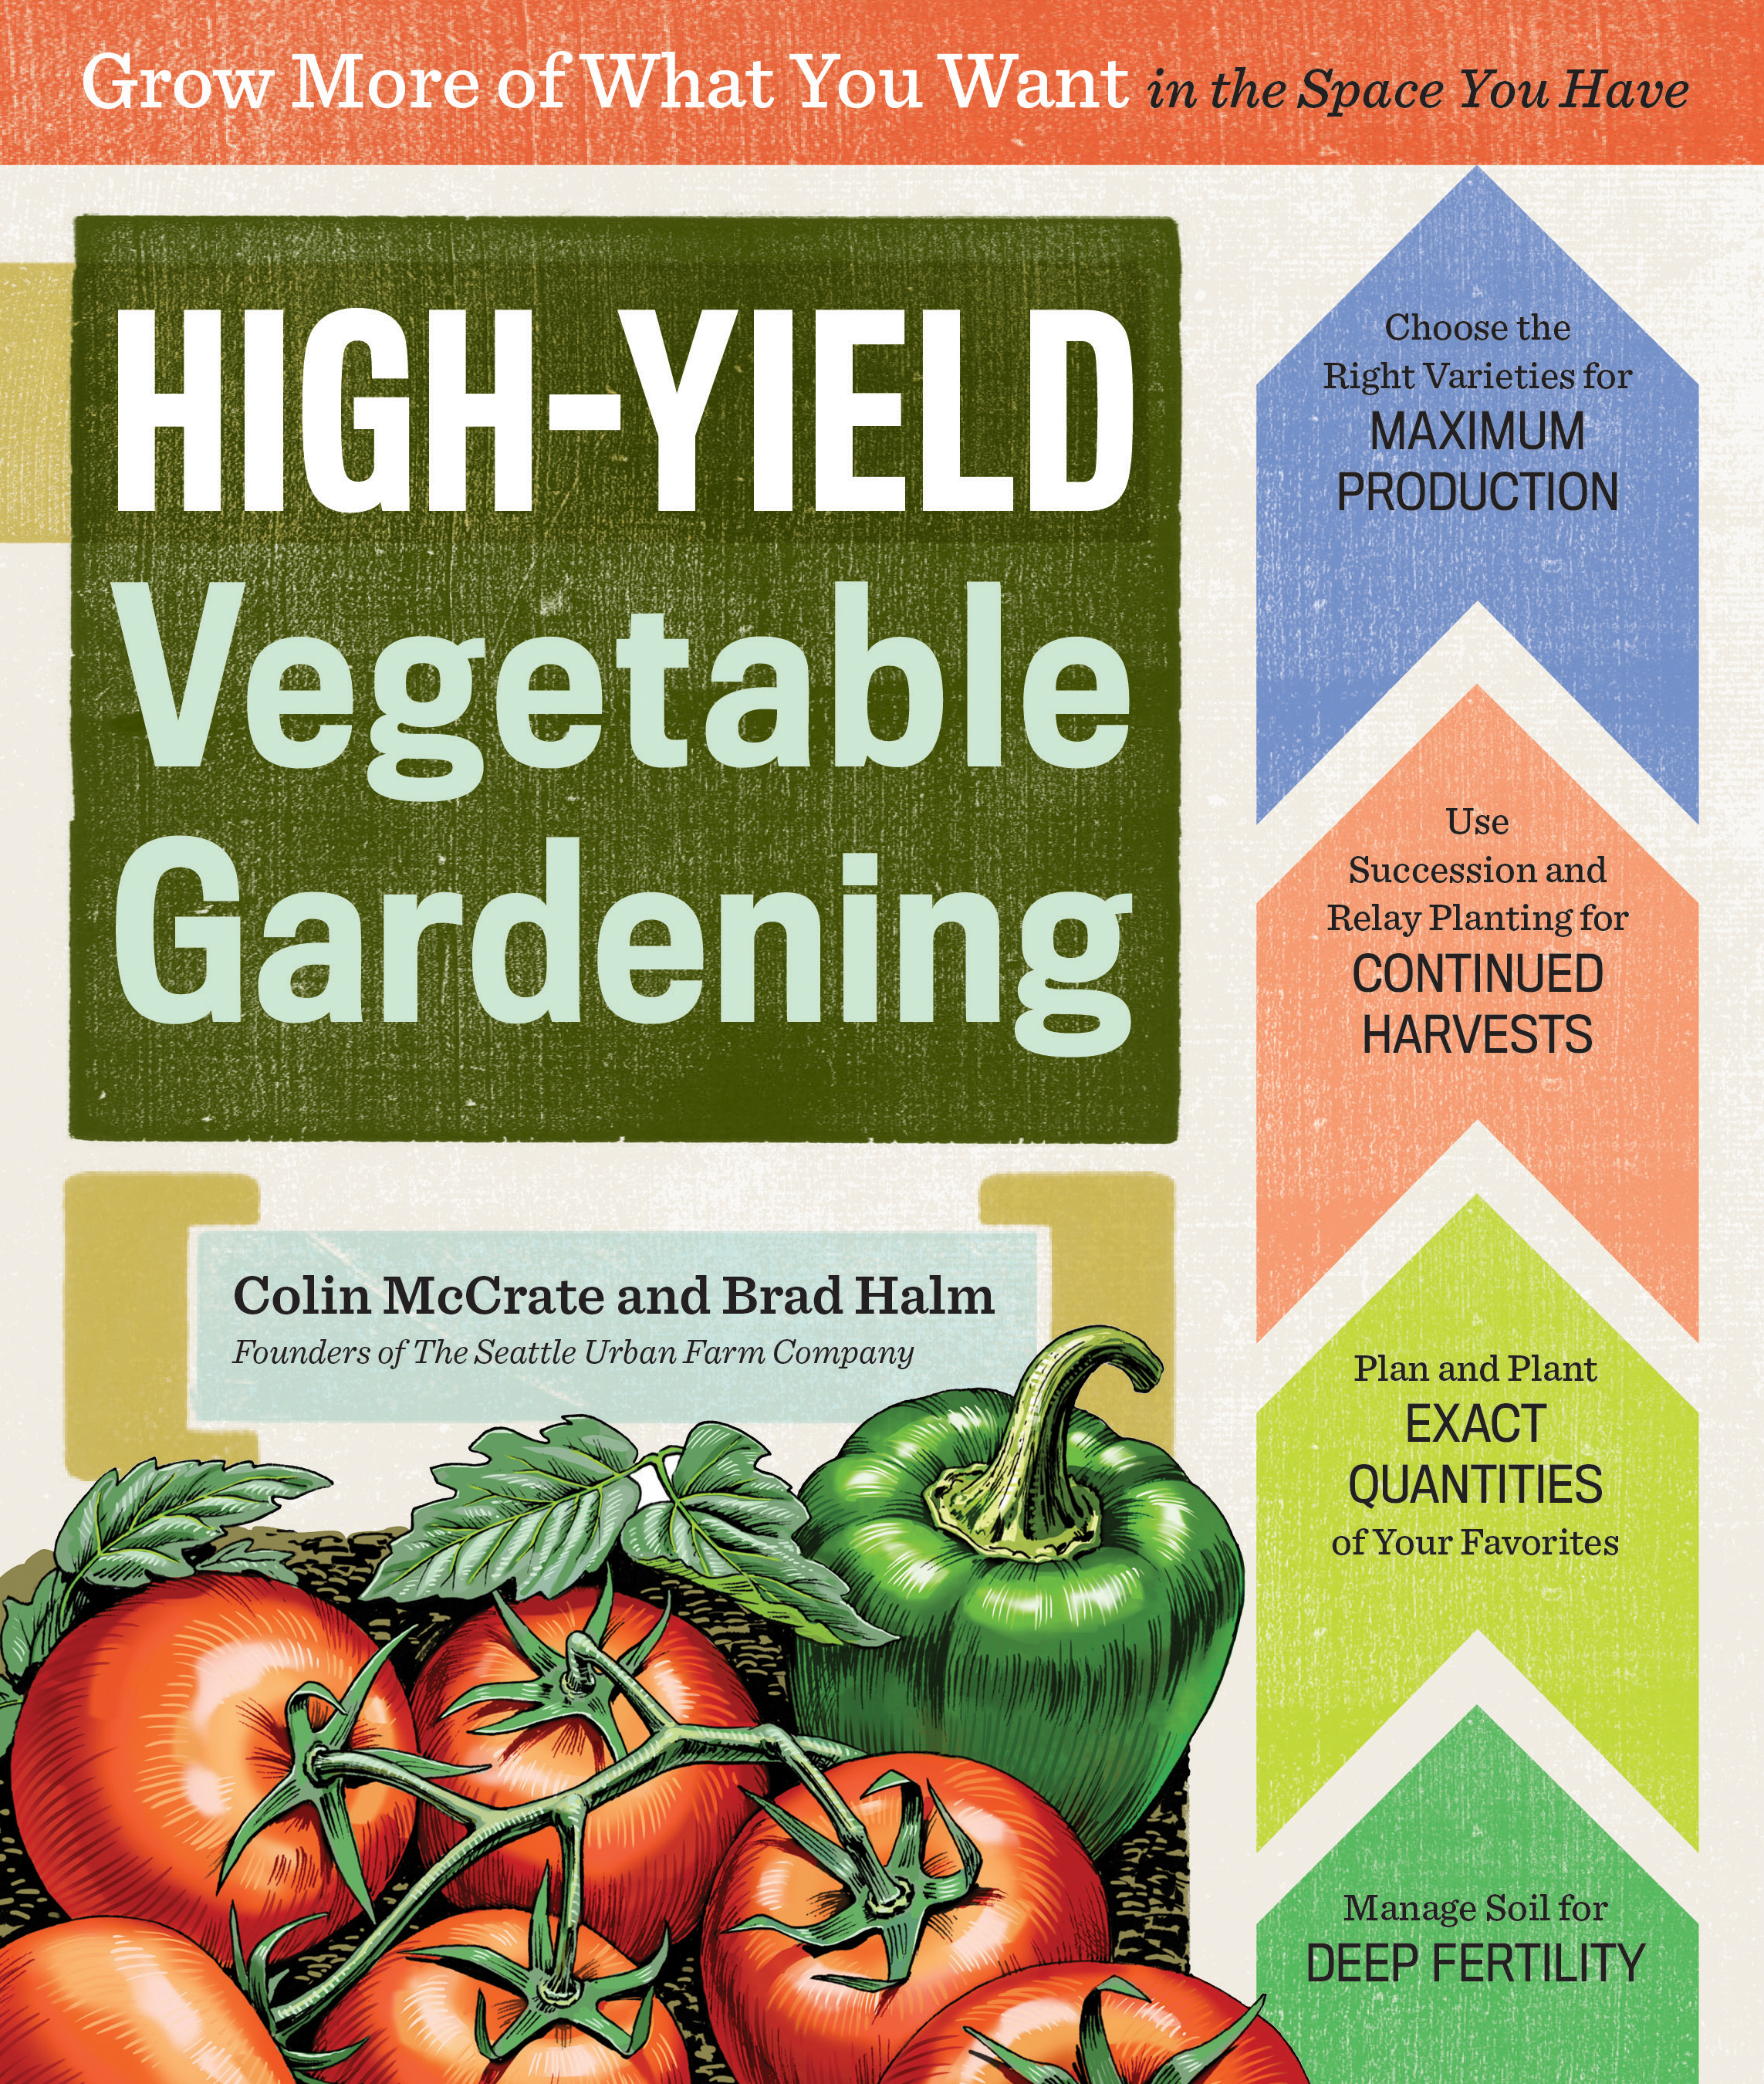 High-Yield Vegetable Gardening Grow More of What You Want in the Space You Have - Colin McCrate